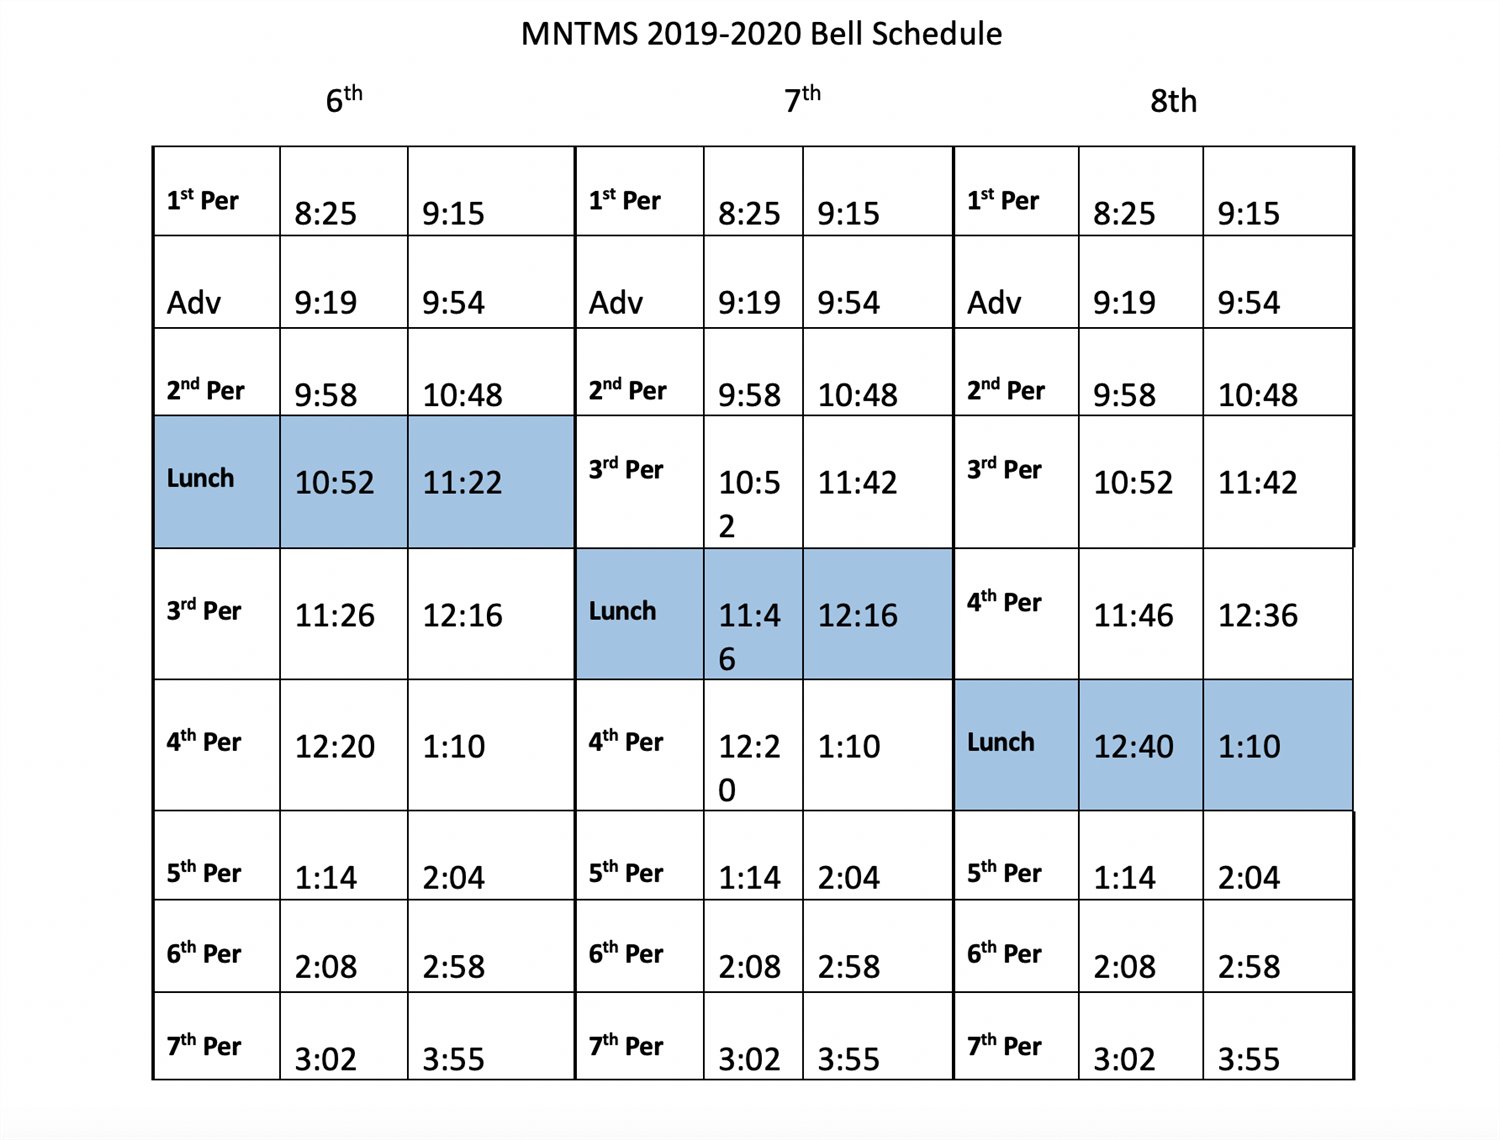 Bell Schedule for MNTMS